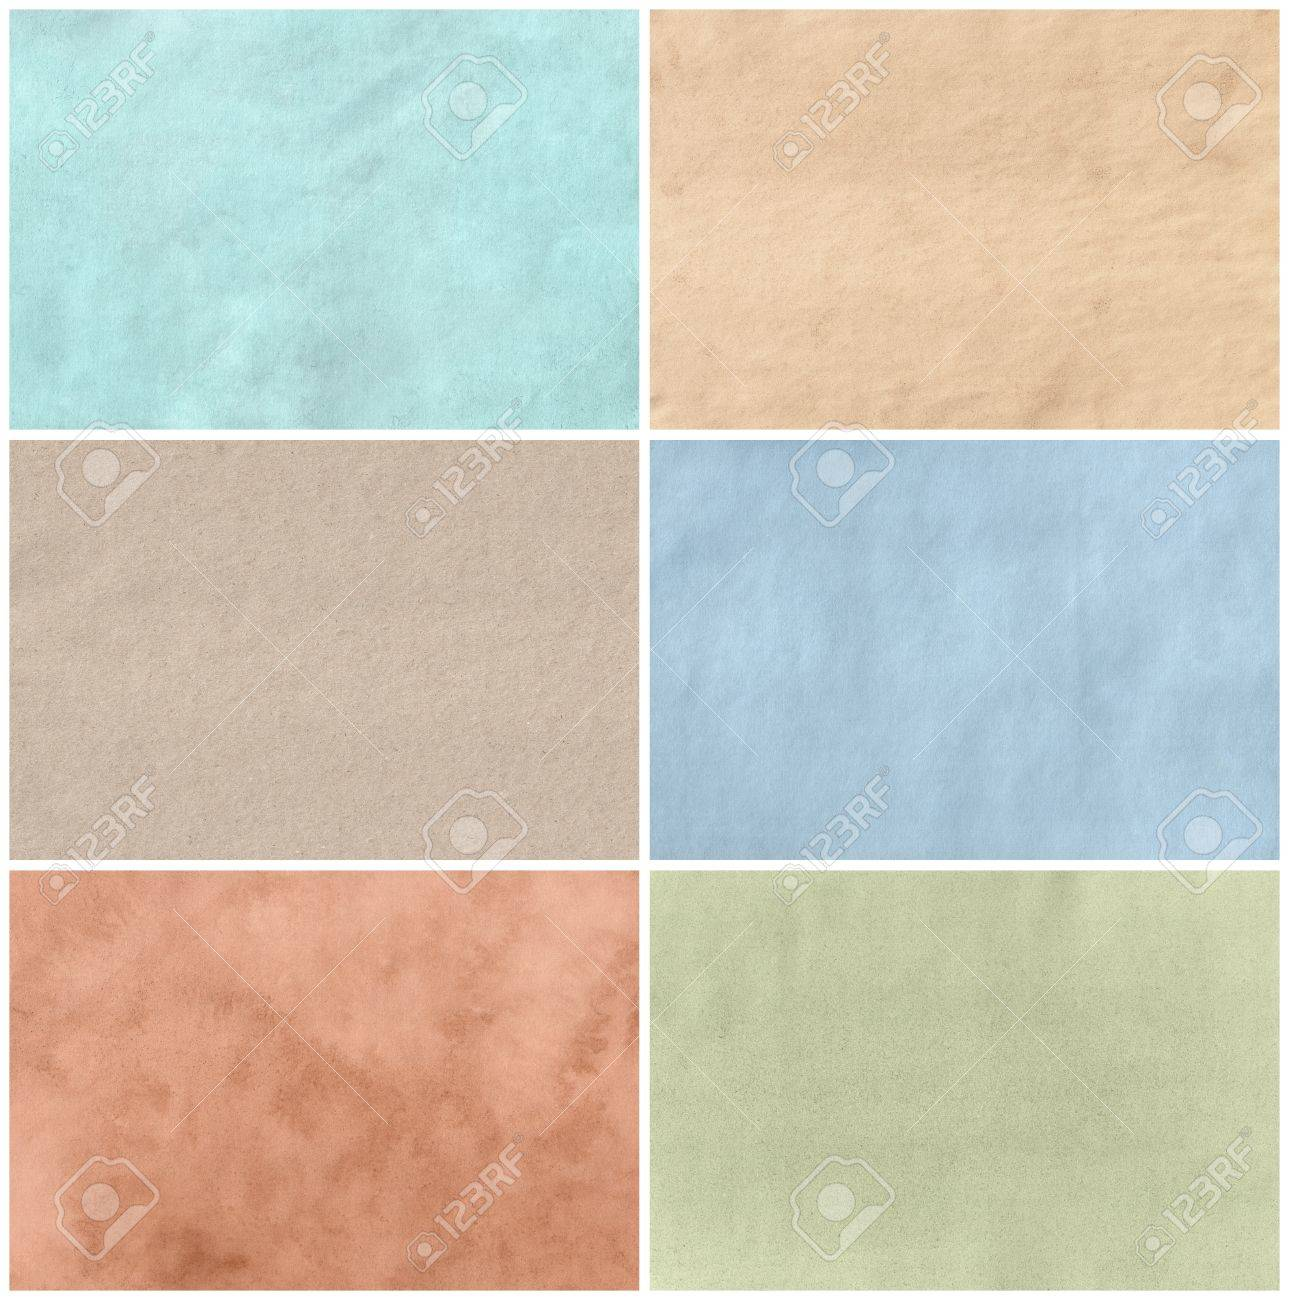 Set of six paper textures with different colors and surface materials  Isolated on white background Stock Photo - 19611280